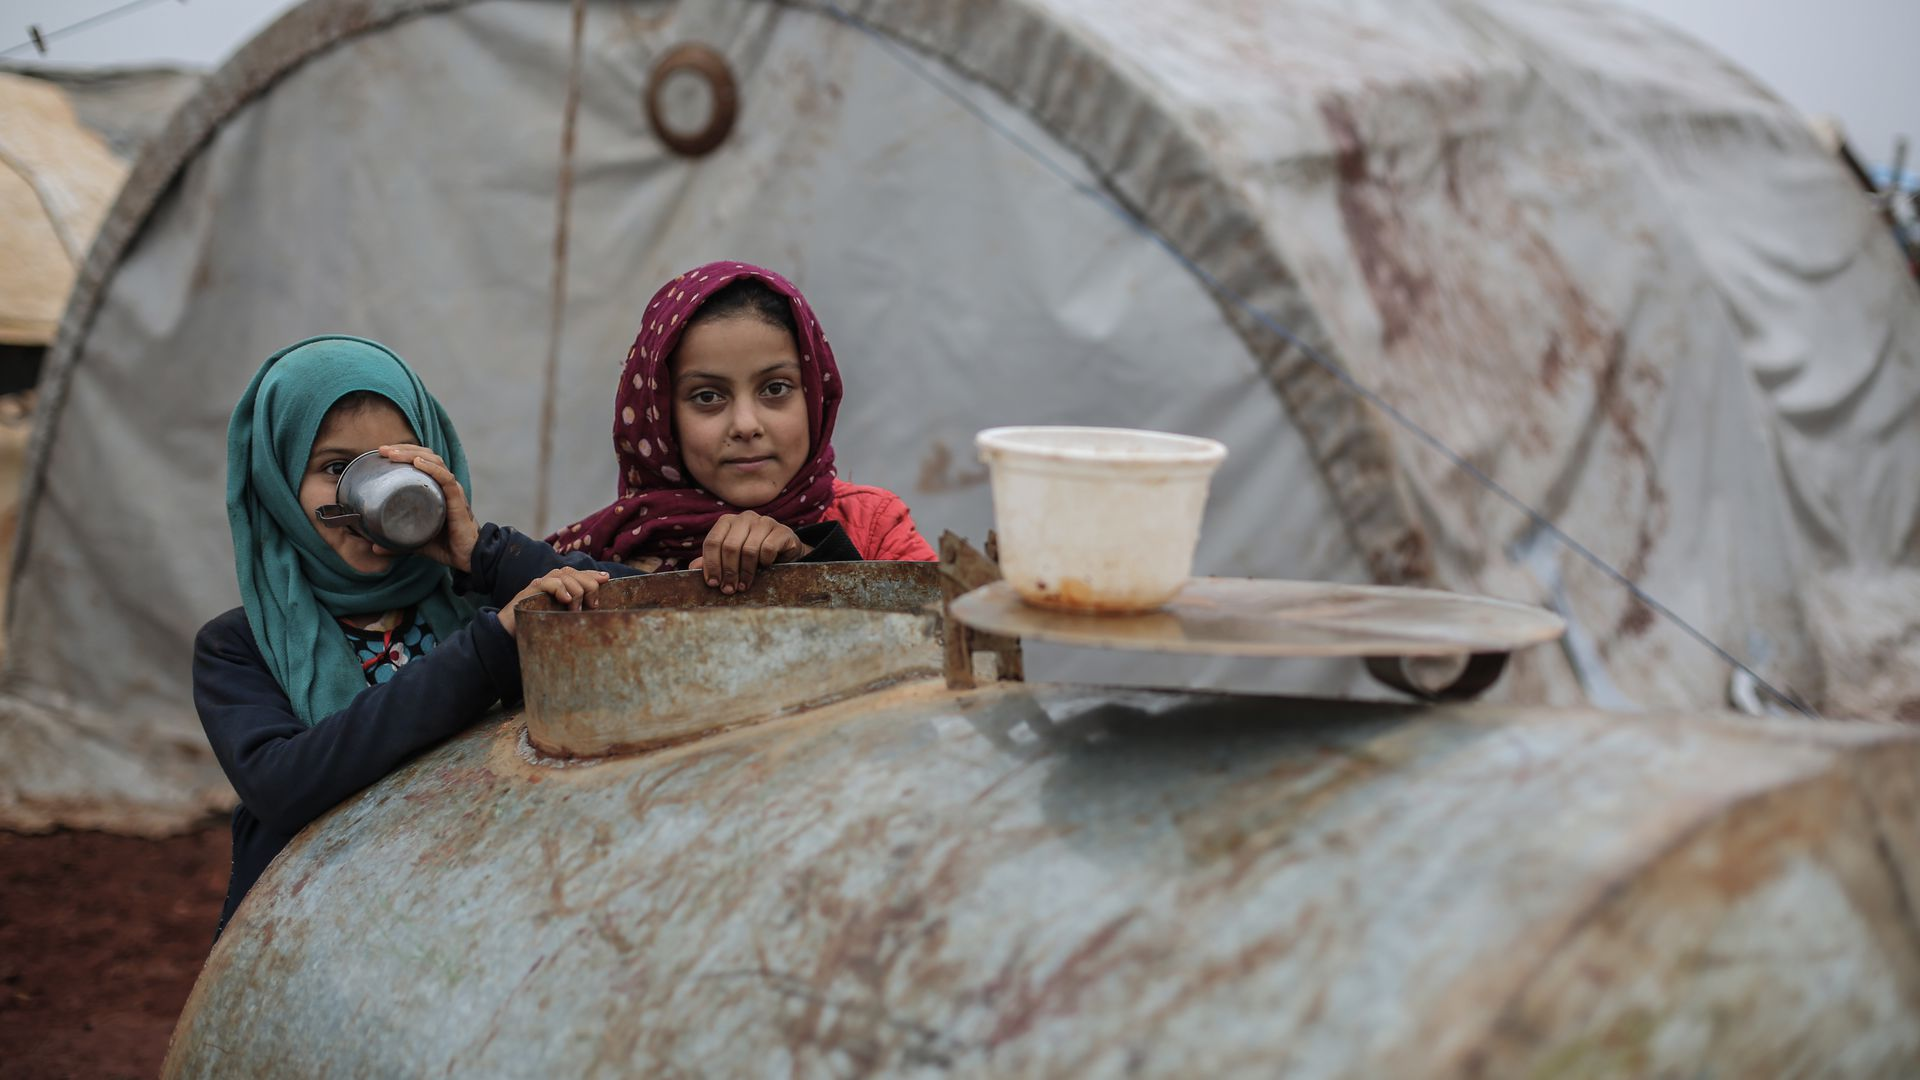 Displaced Syrian girls lean on a cistern during rainy weather at a camp for Syrian displaced people near the Syrian-Turkish border in the Northern countryside of Idlib.